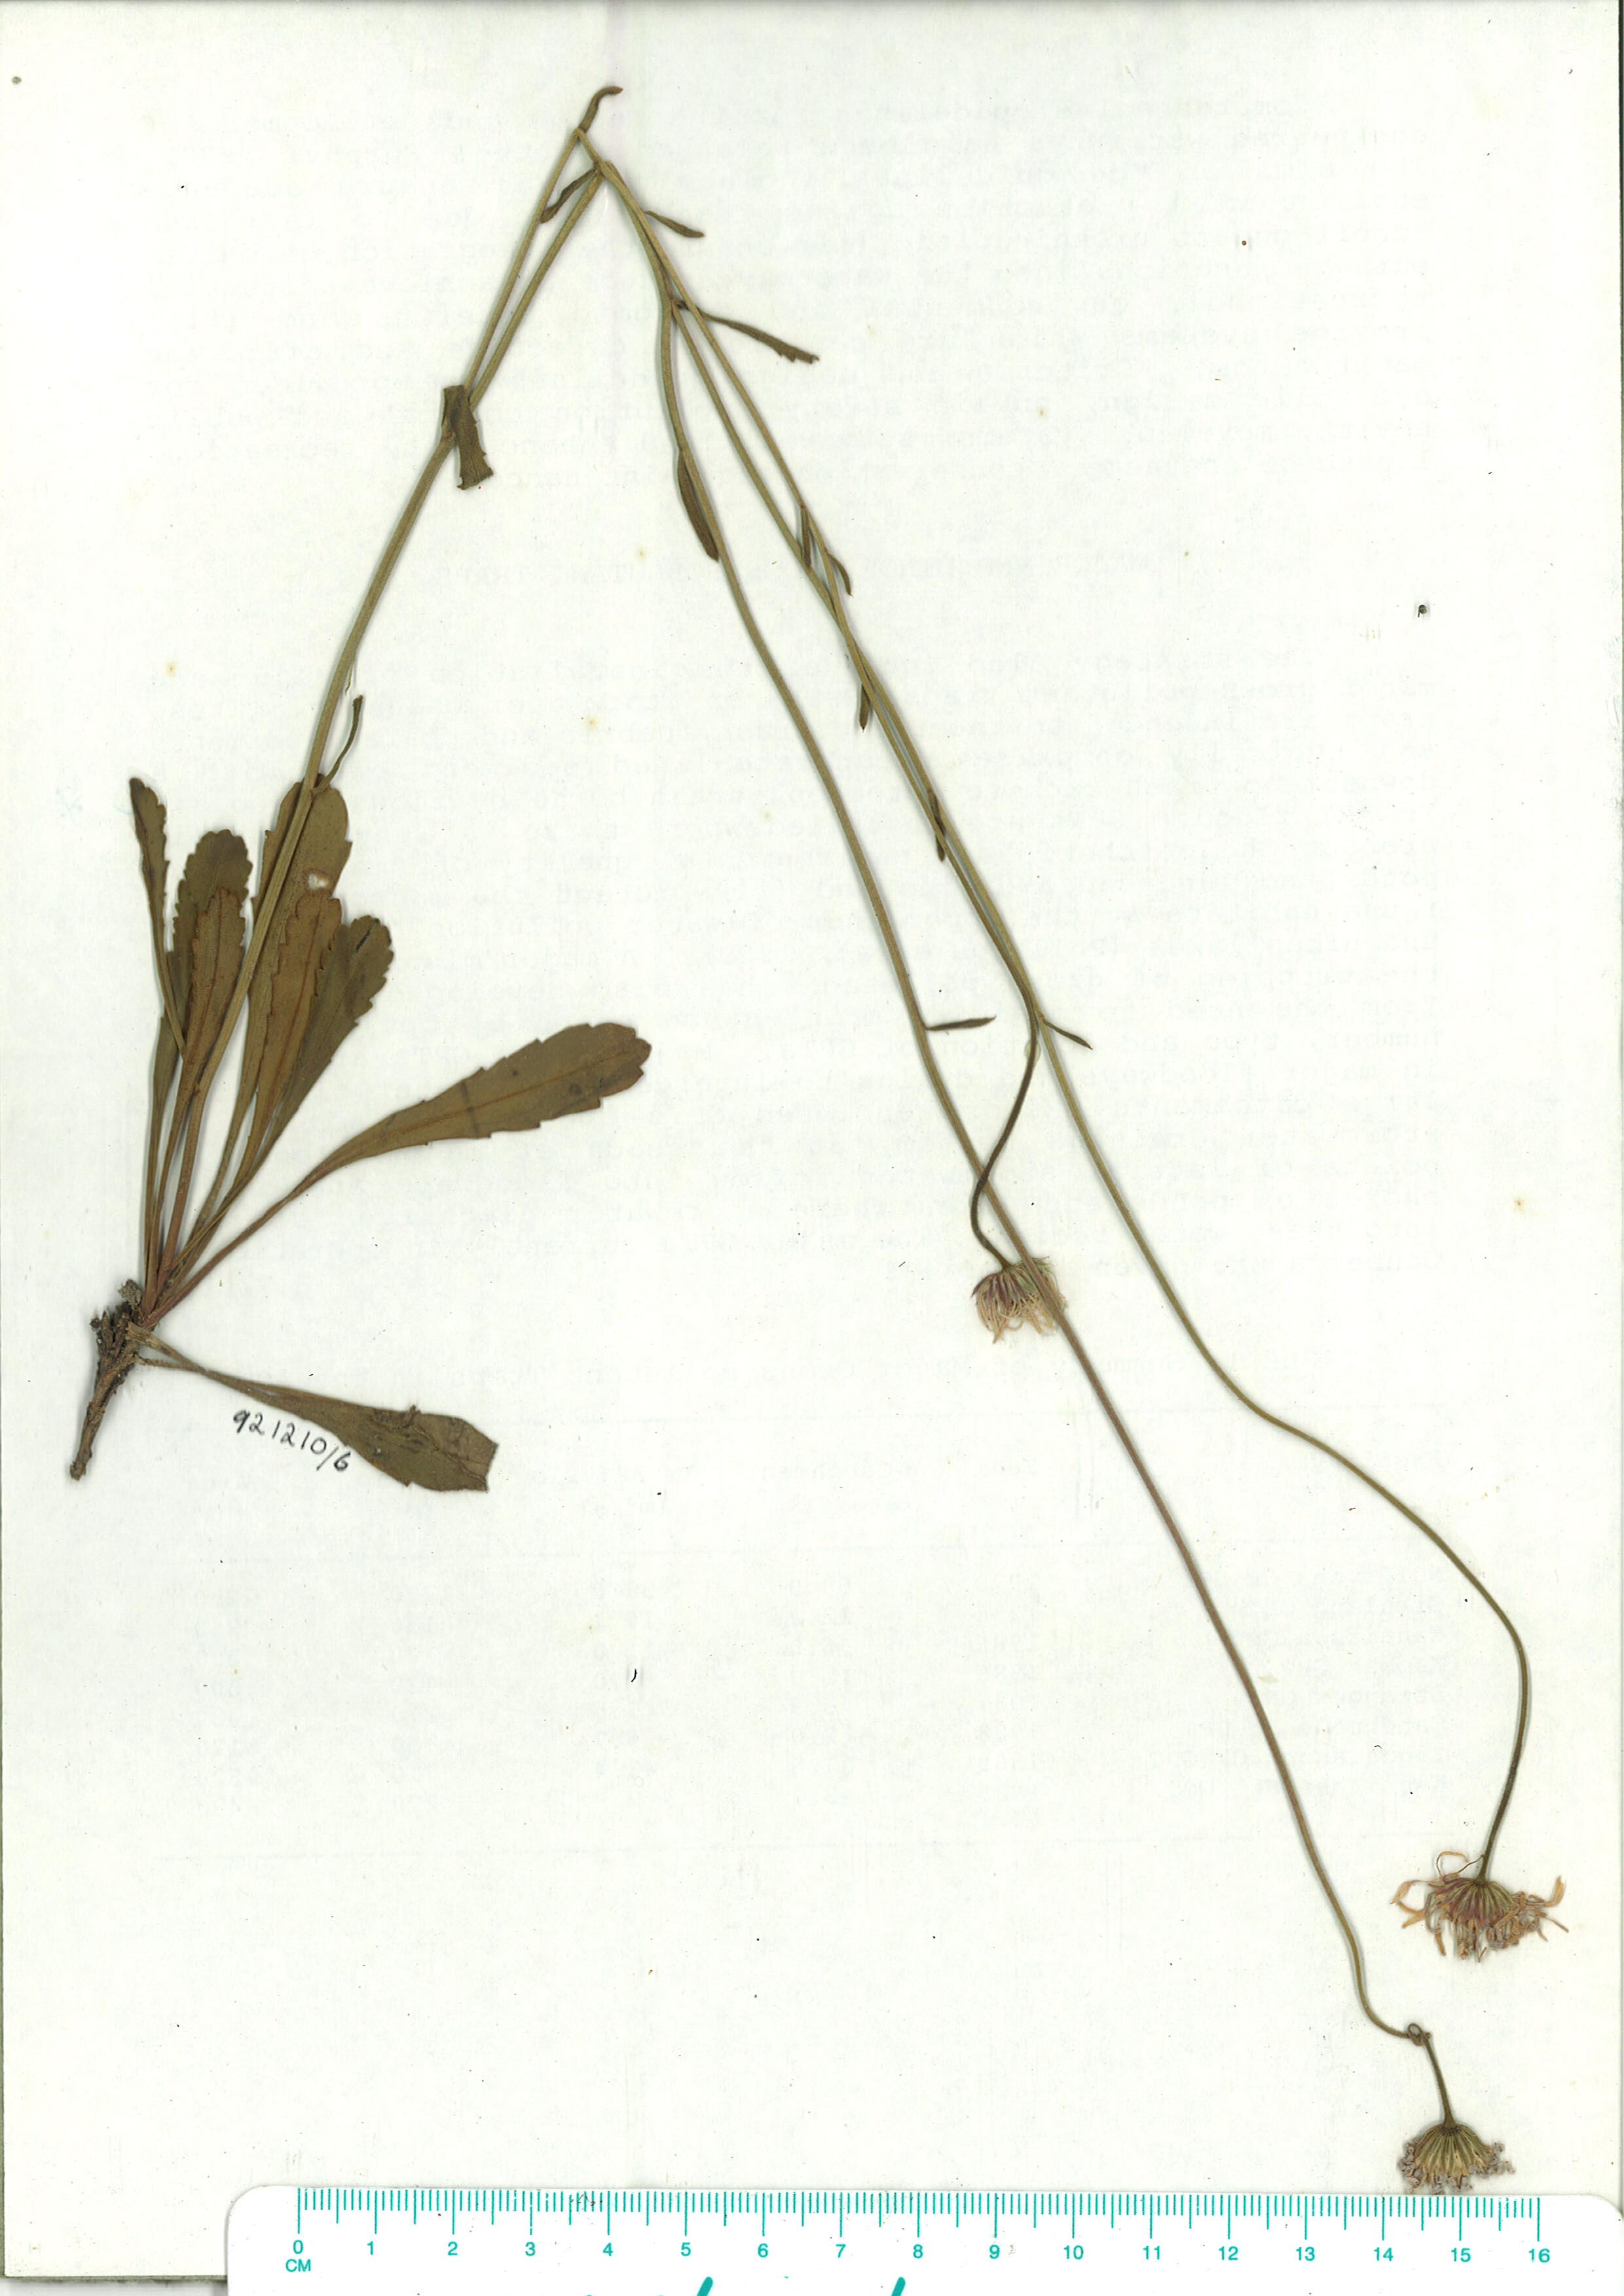 Scanned image of herbarium image of Brachyscome spathulata